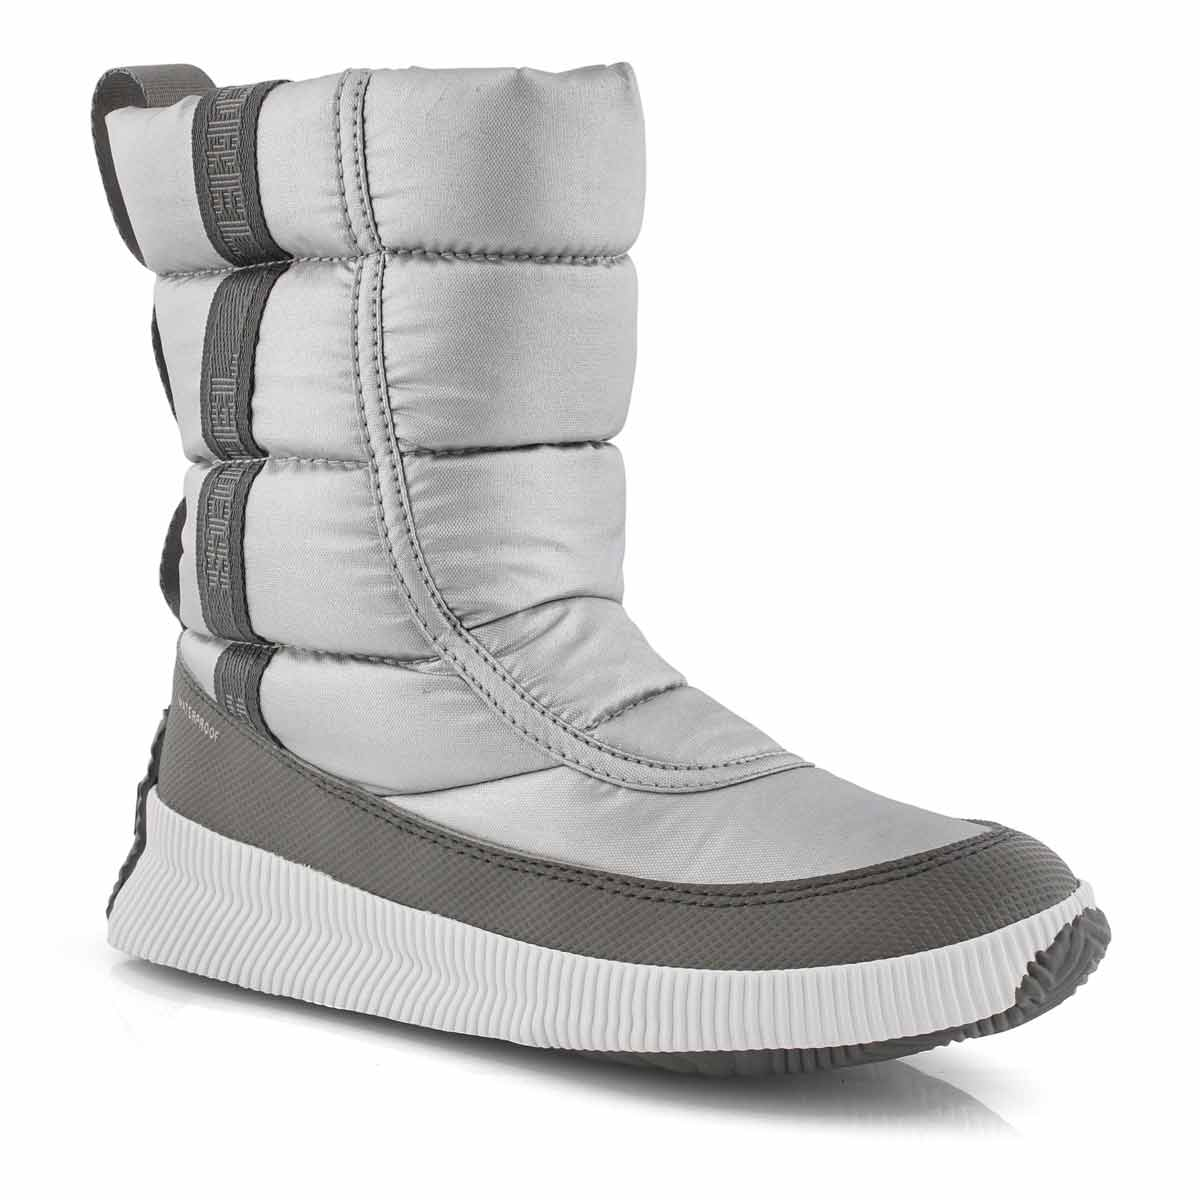 Lds Out'NAboutPuffyMid silver wtpf boot